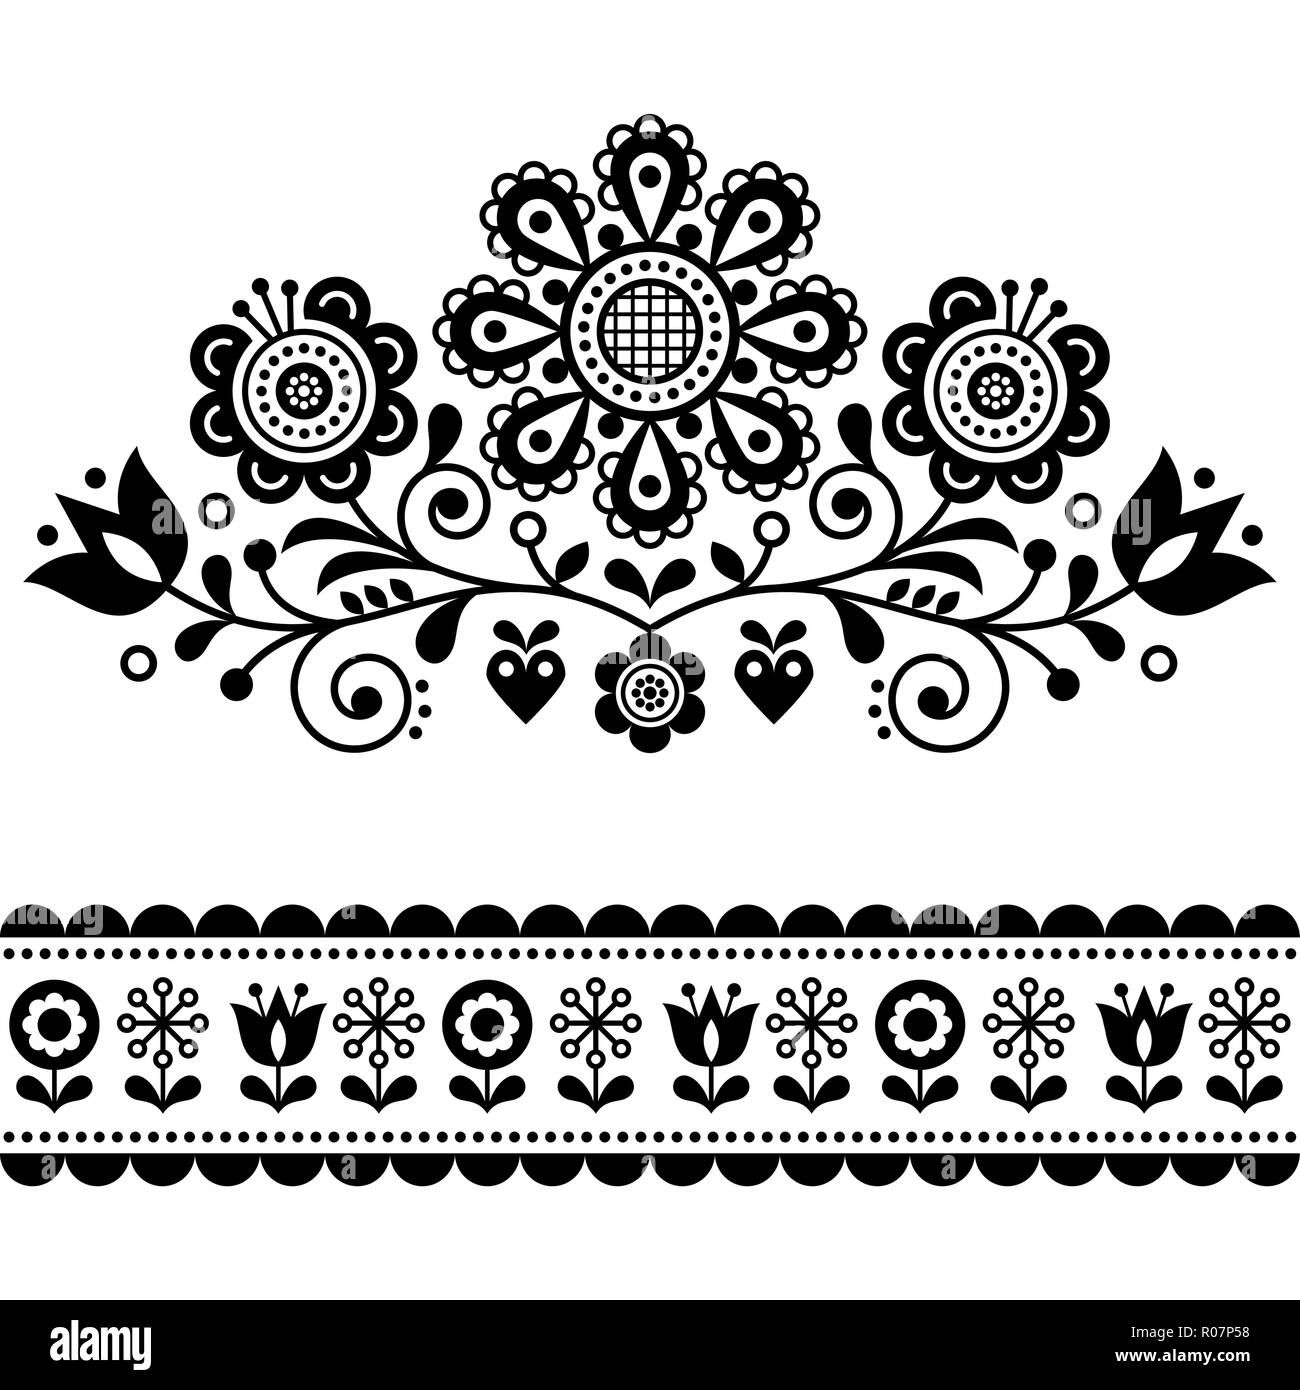 Scandinavian Vector Folk Art Pattern With Flowers Traditional Floral Frame Or Border Black And White Design Cute Monochrome Ornament Stock Image Alamy